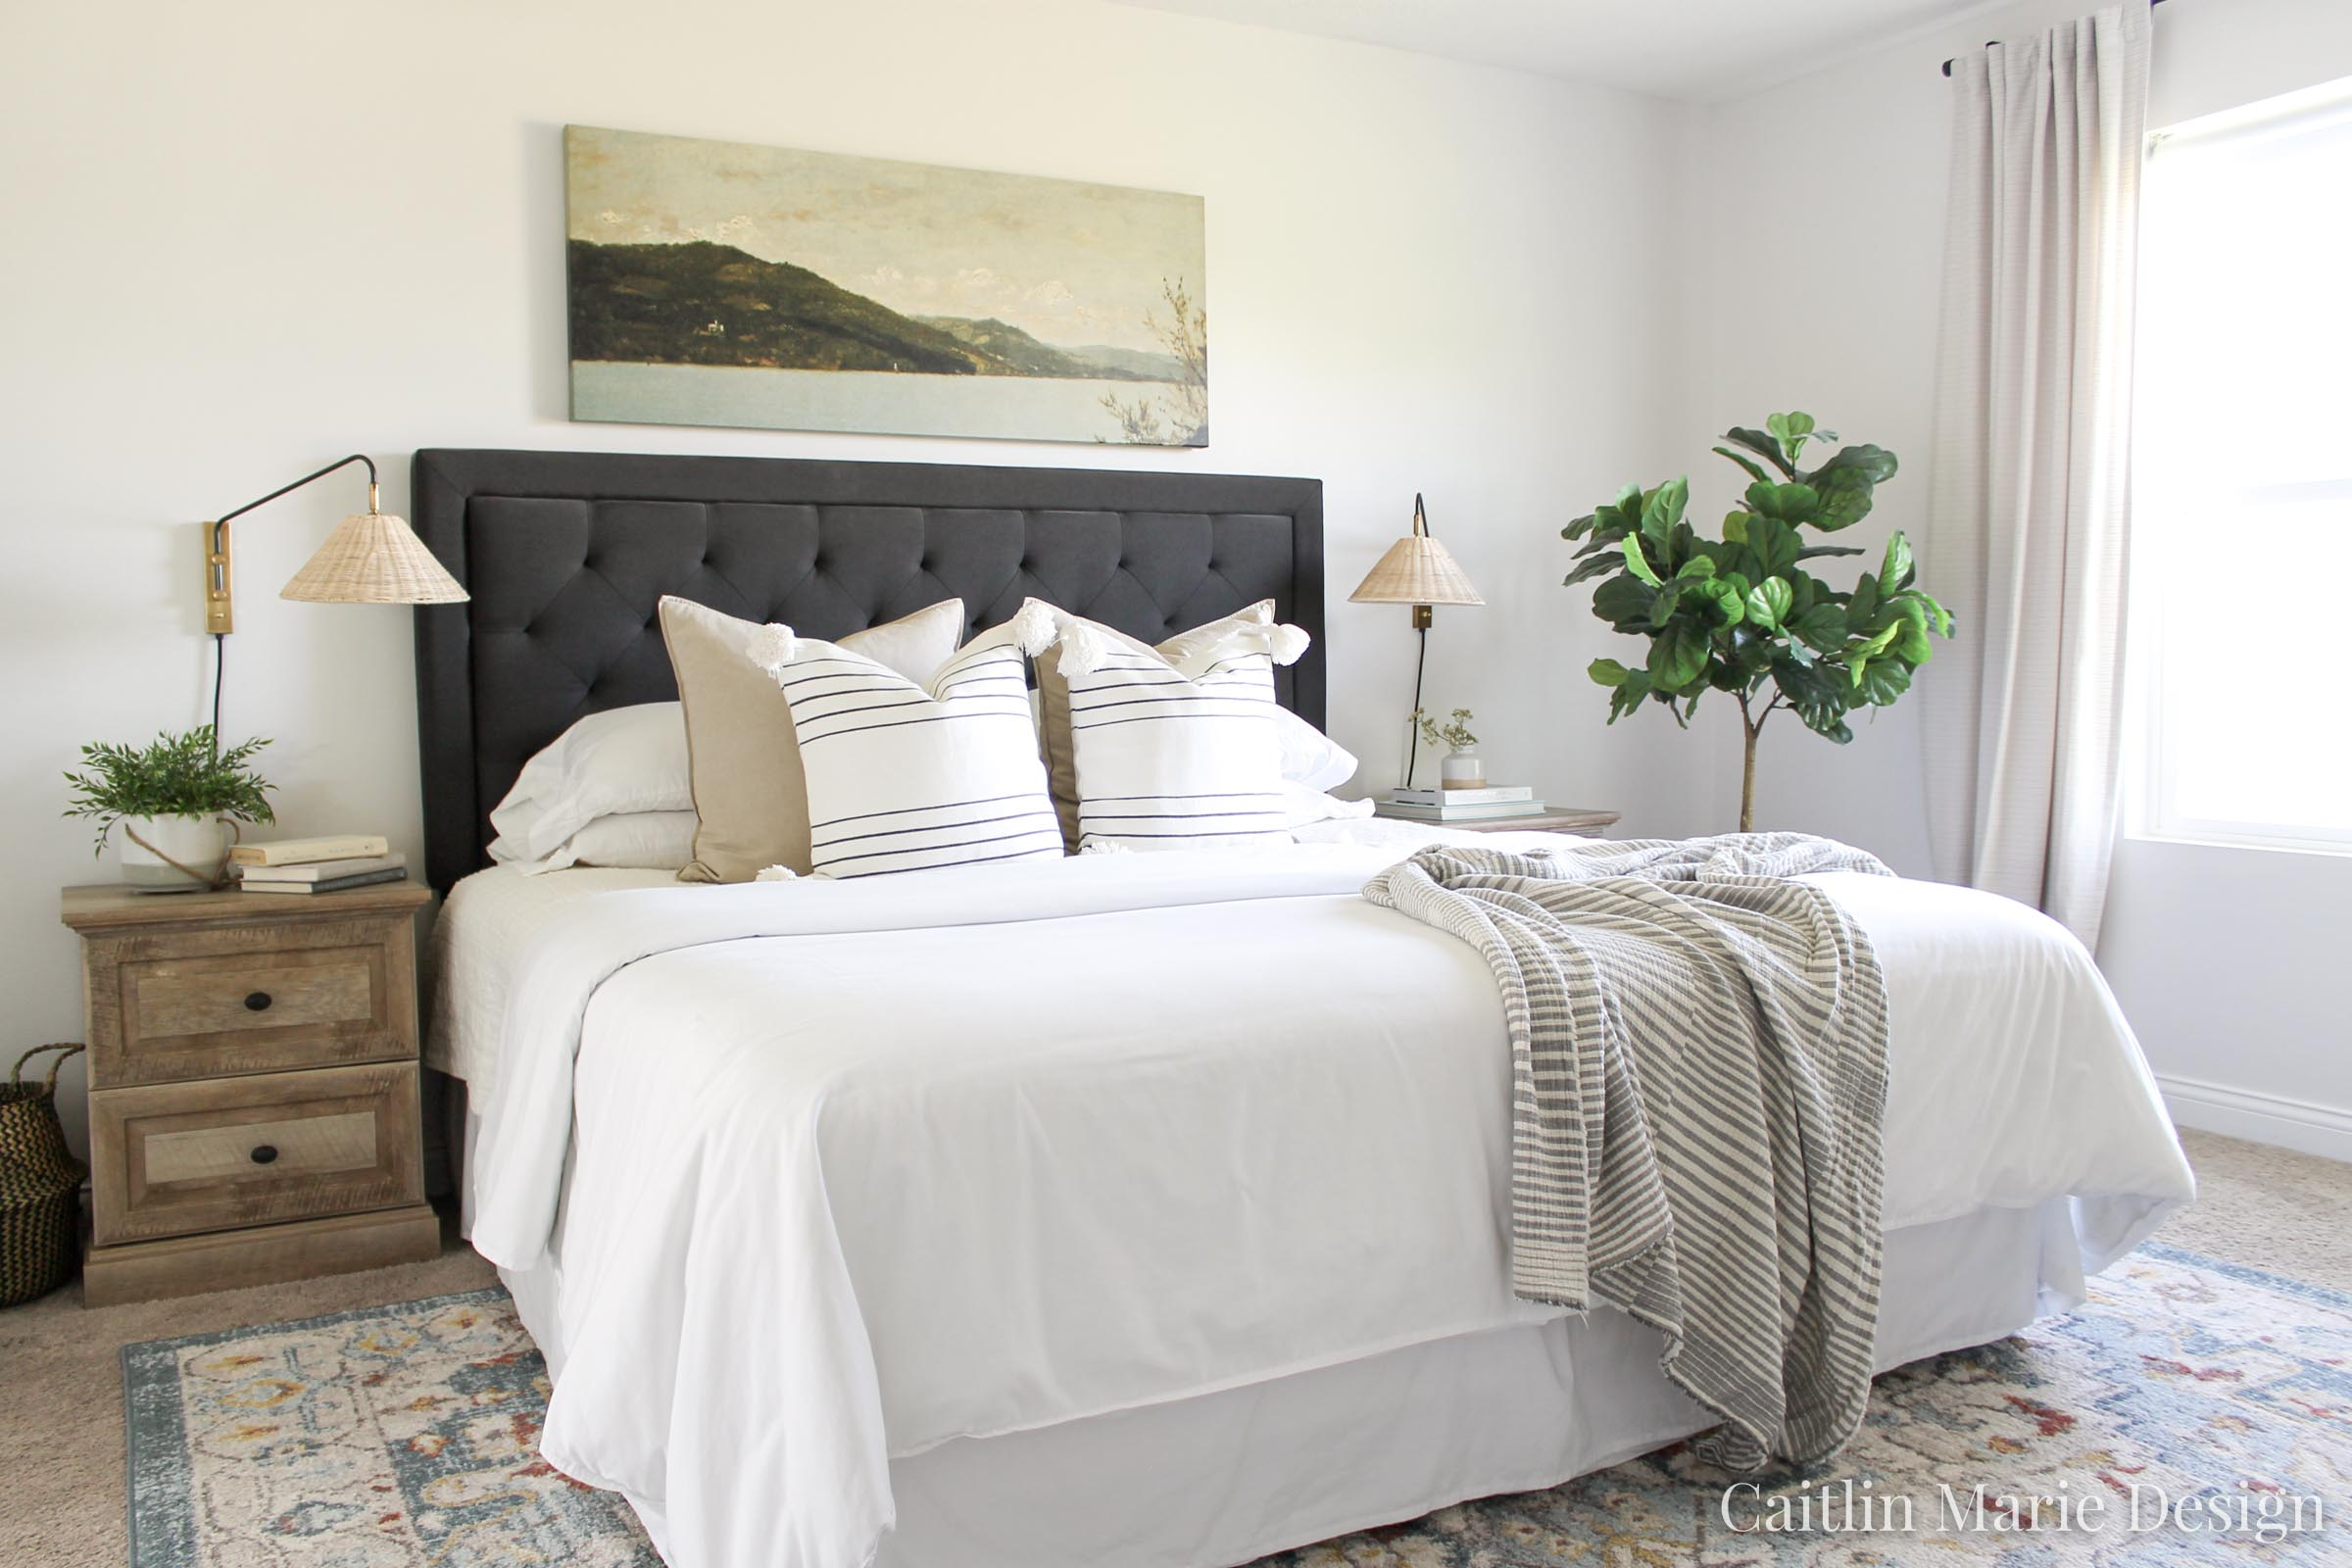 Coastal Decor Refresh with Serena & Lily | coastal bedroom, rattan plug in wall sconces, dark headboard, neutral bedroom decor, wide art above the bed, vintage landscape painting